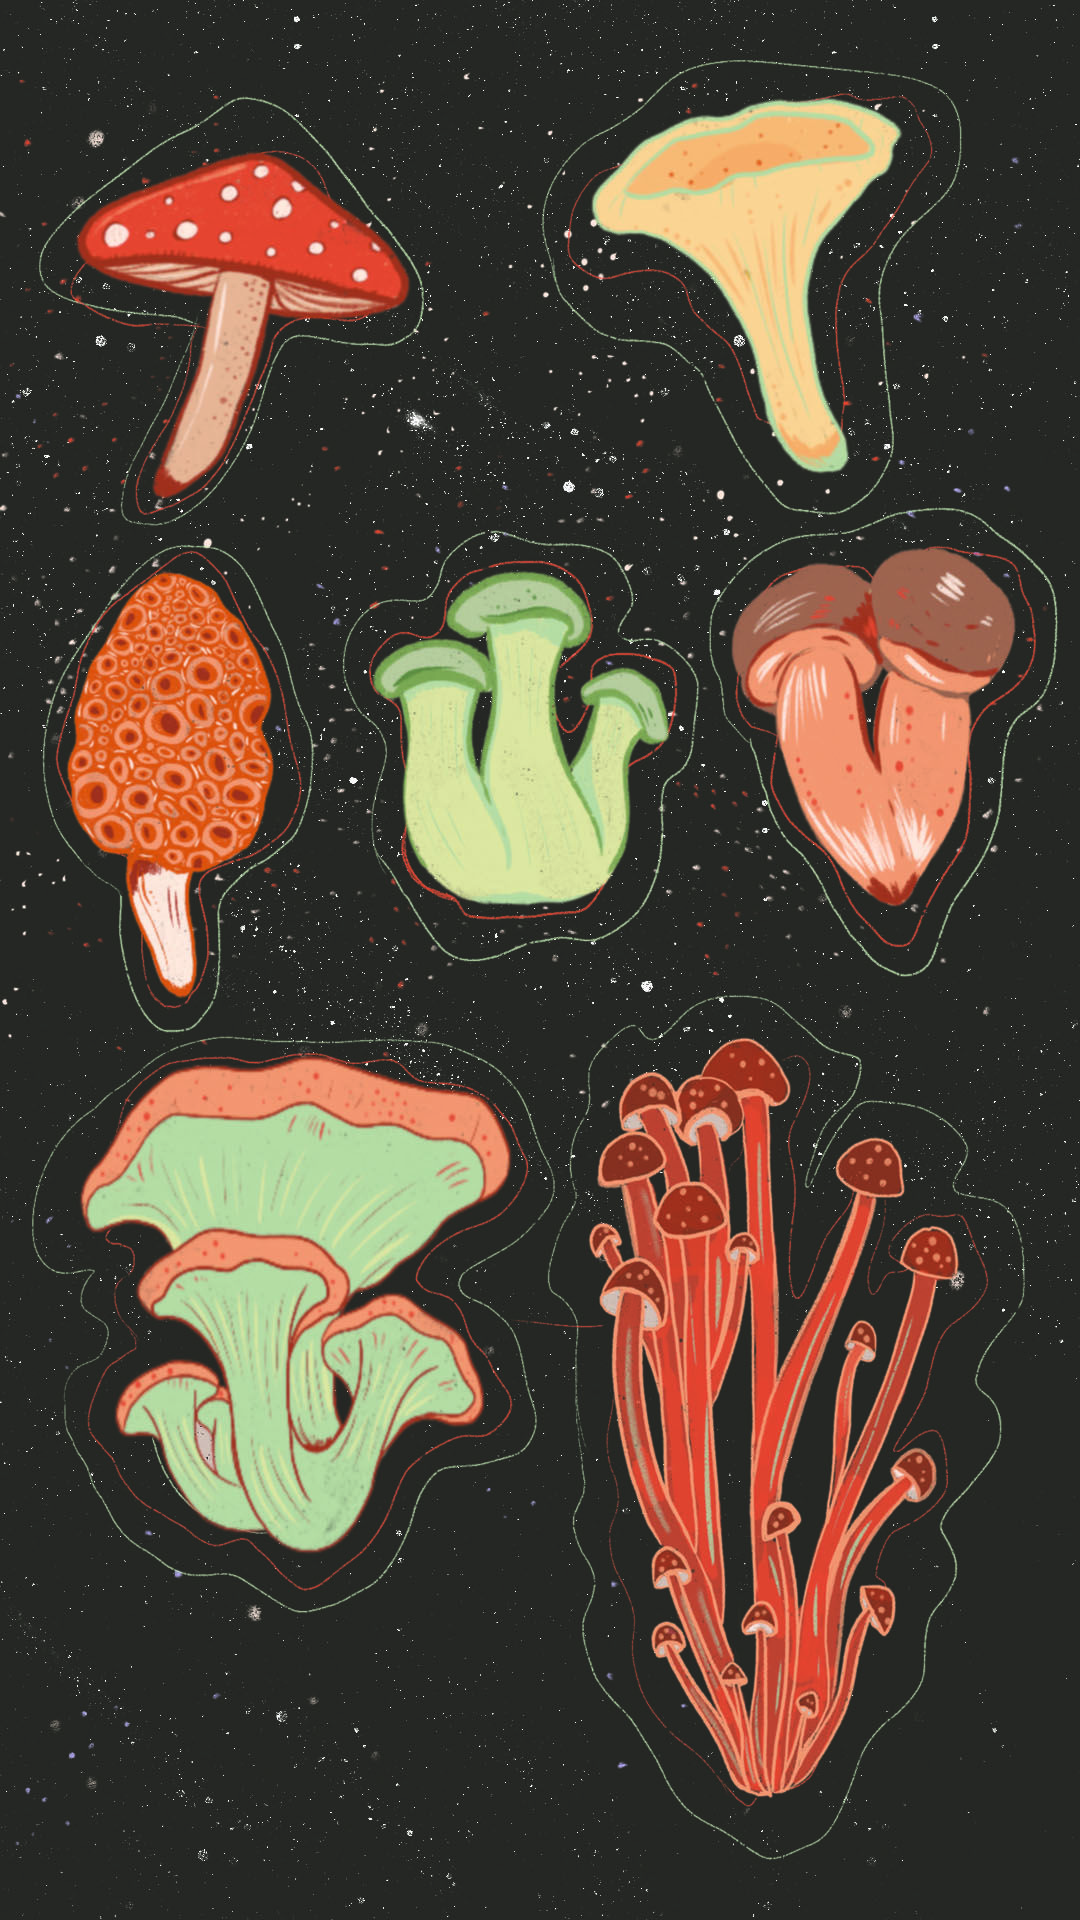 Phone Wall Paper Download Mushroom Forager In 2021 Mushroom Wallpaper Hippie Wallpaper Witchy Wallpaper